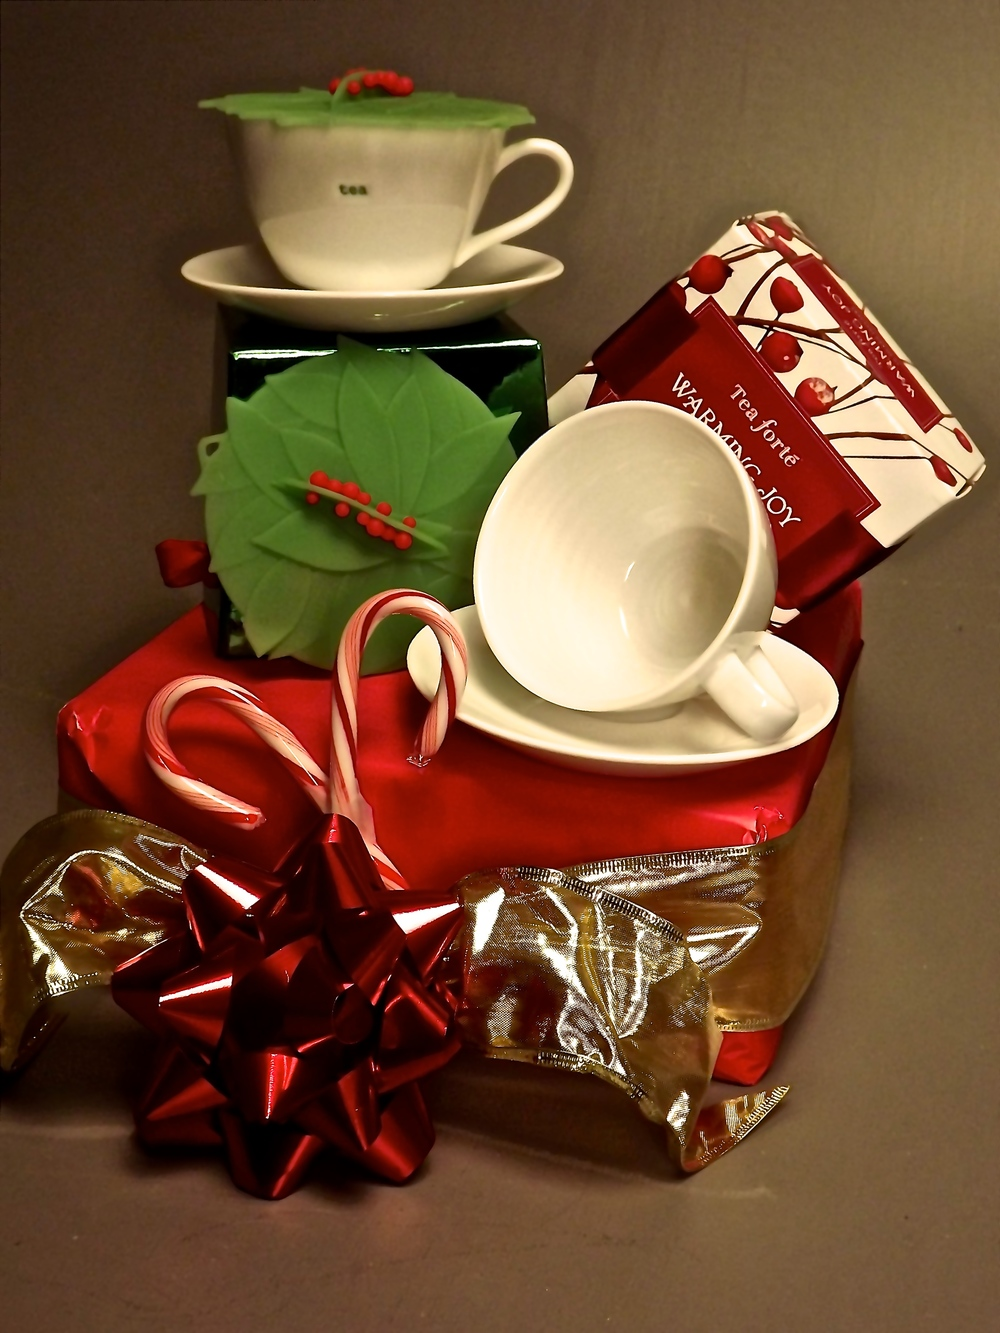 Two teacups & saucers, two holiday beverage covers and a box of tea.